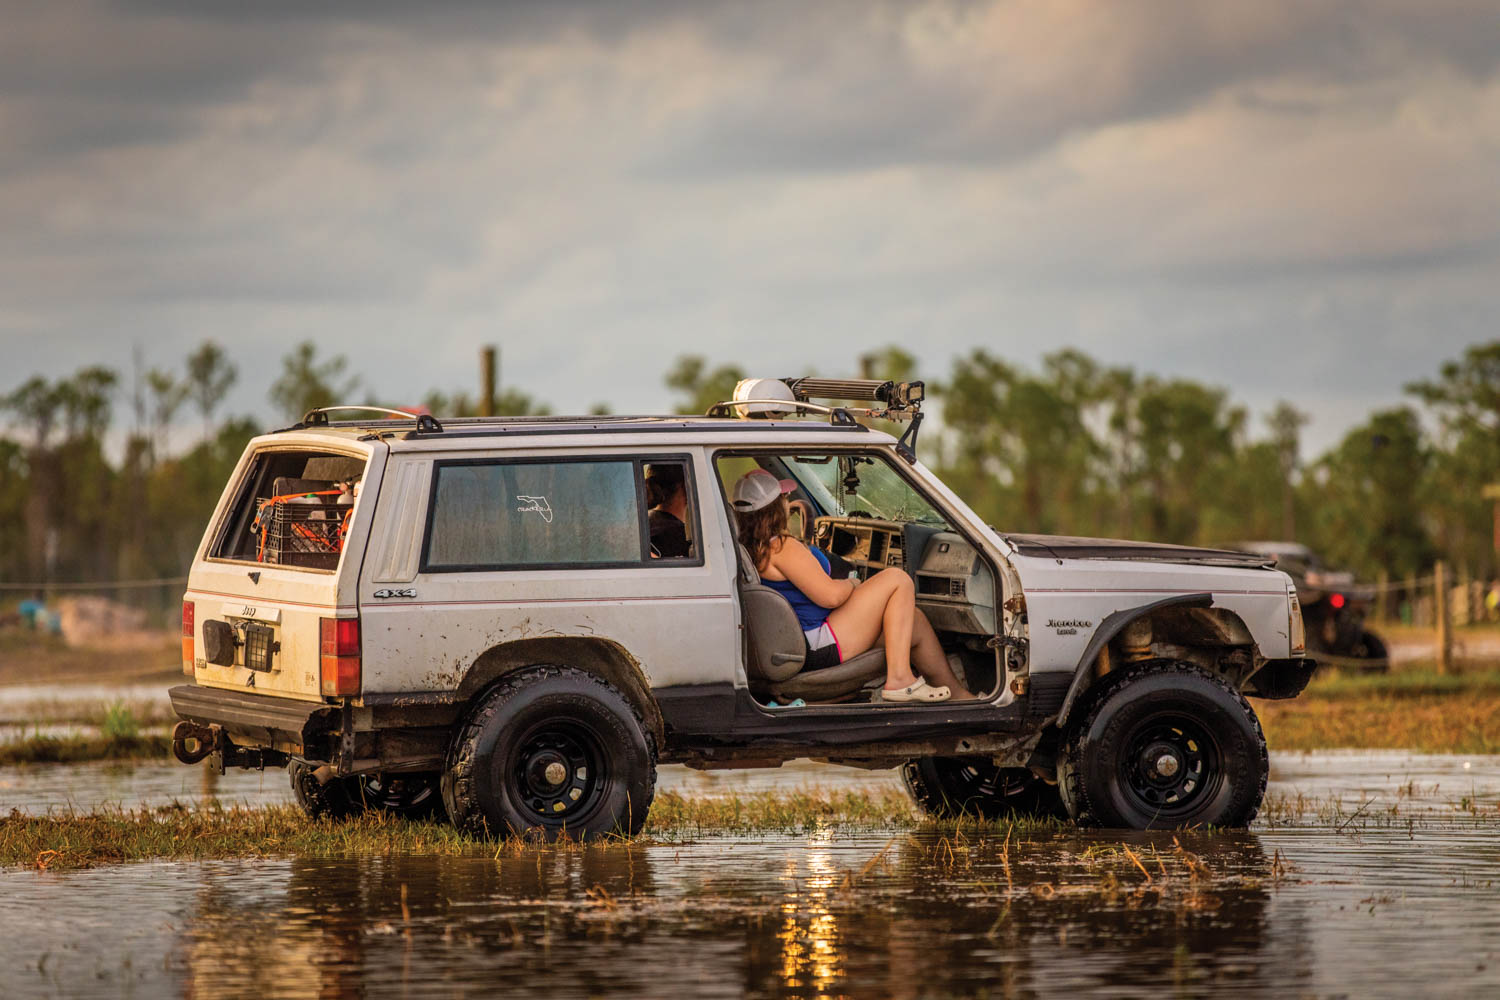 The Jeep Cherokee XJ-generation is right at home in the Florida mud pits. Doors optional.